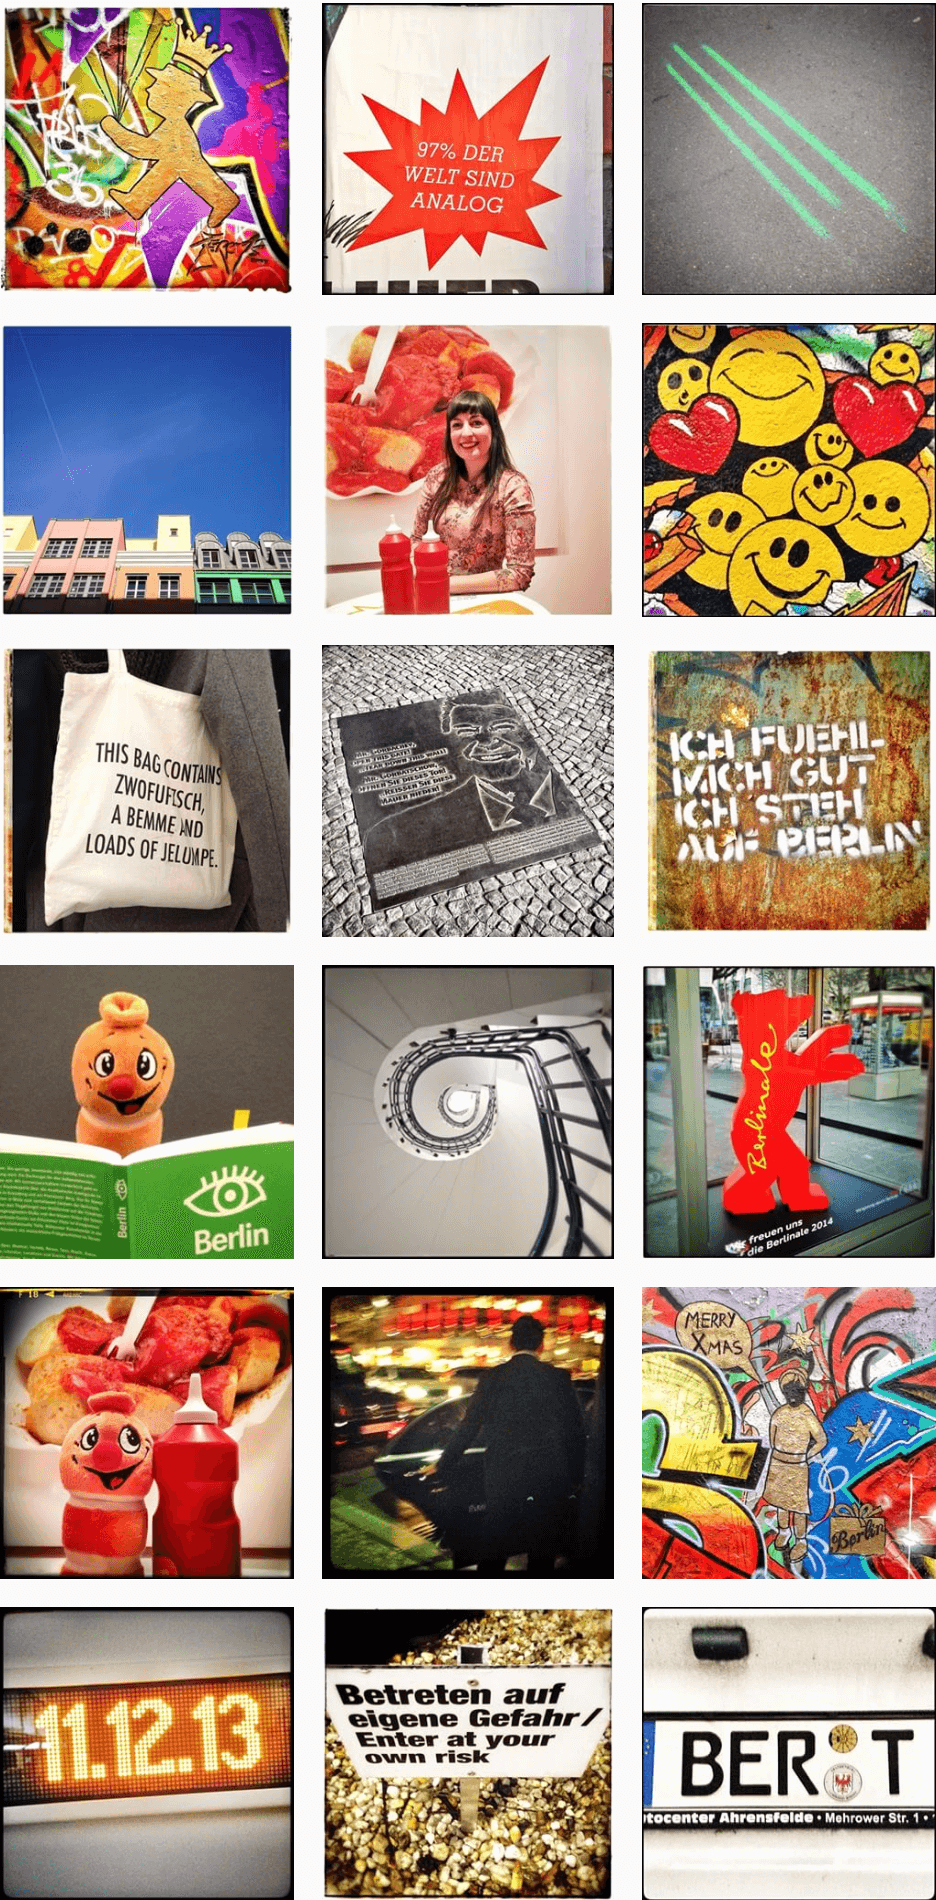 Currywurst museum instagram account